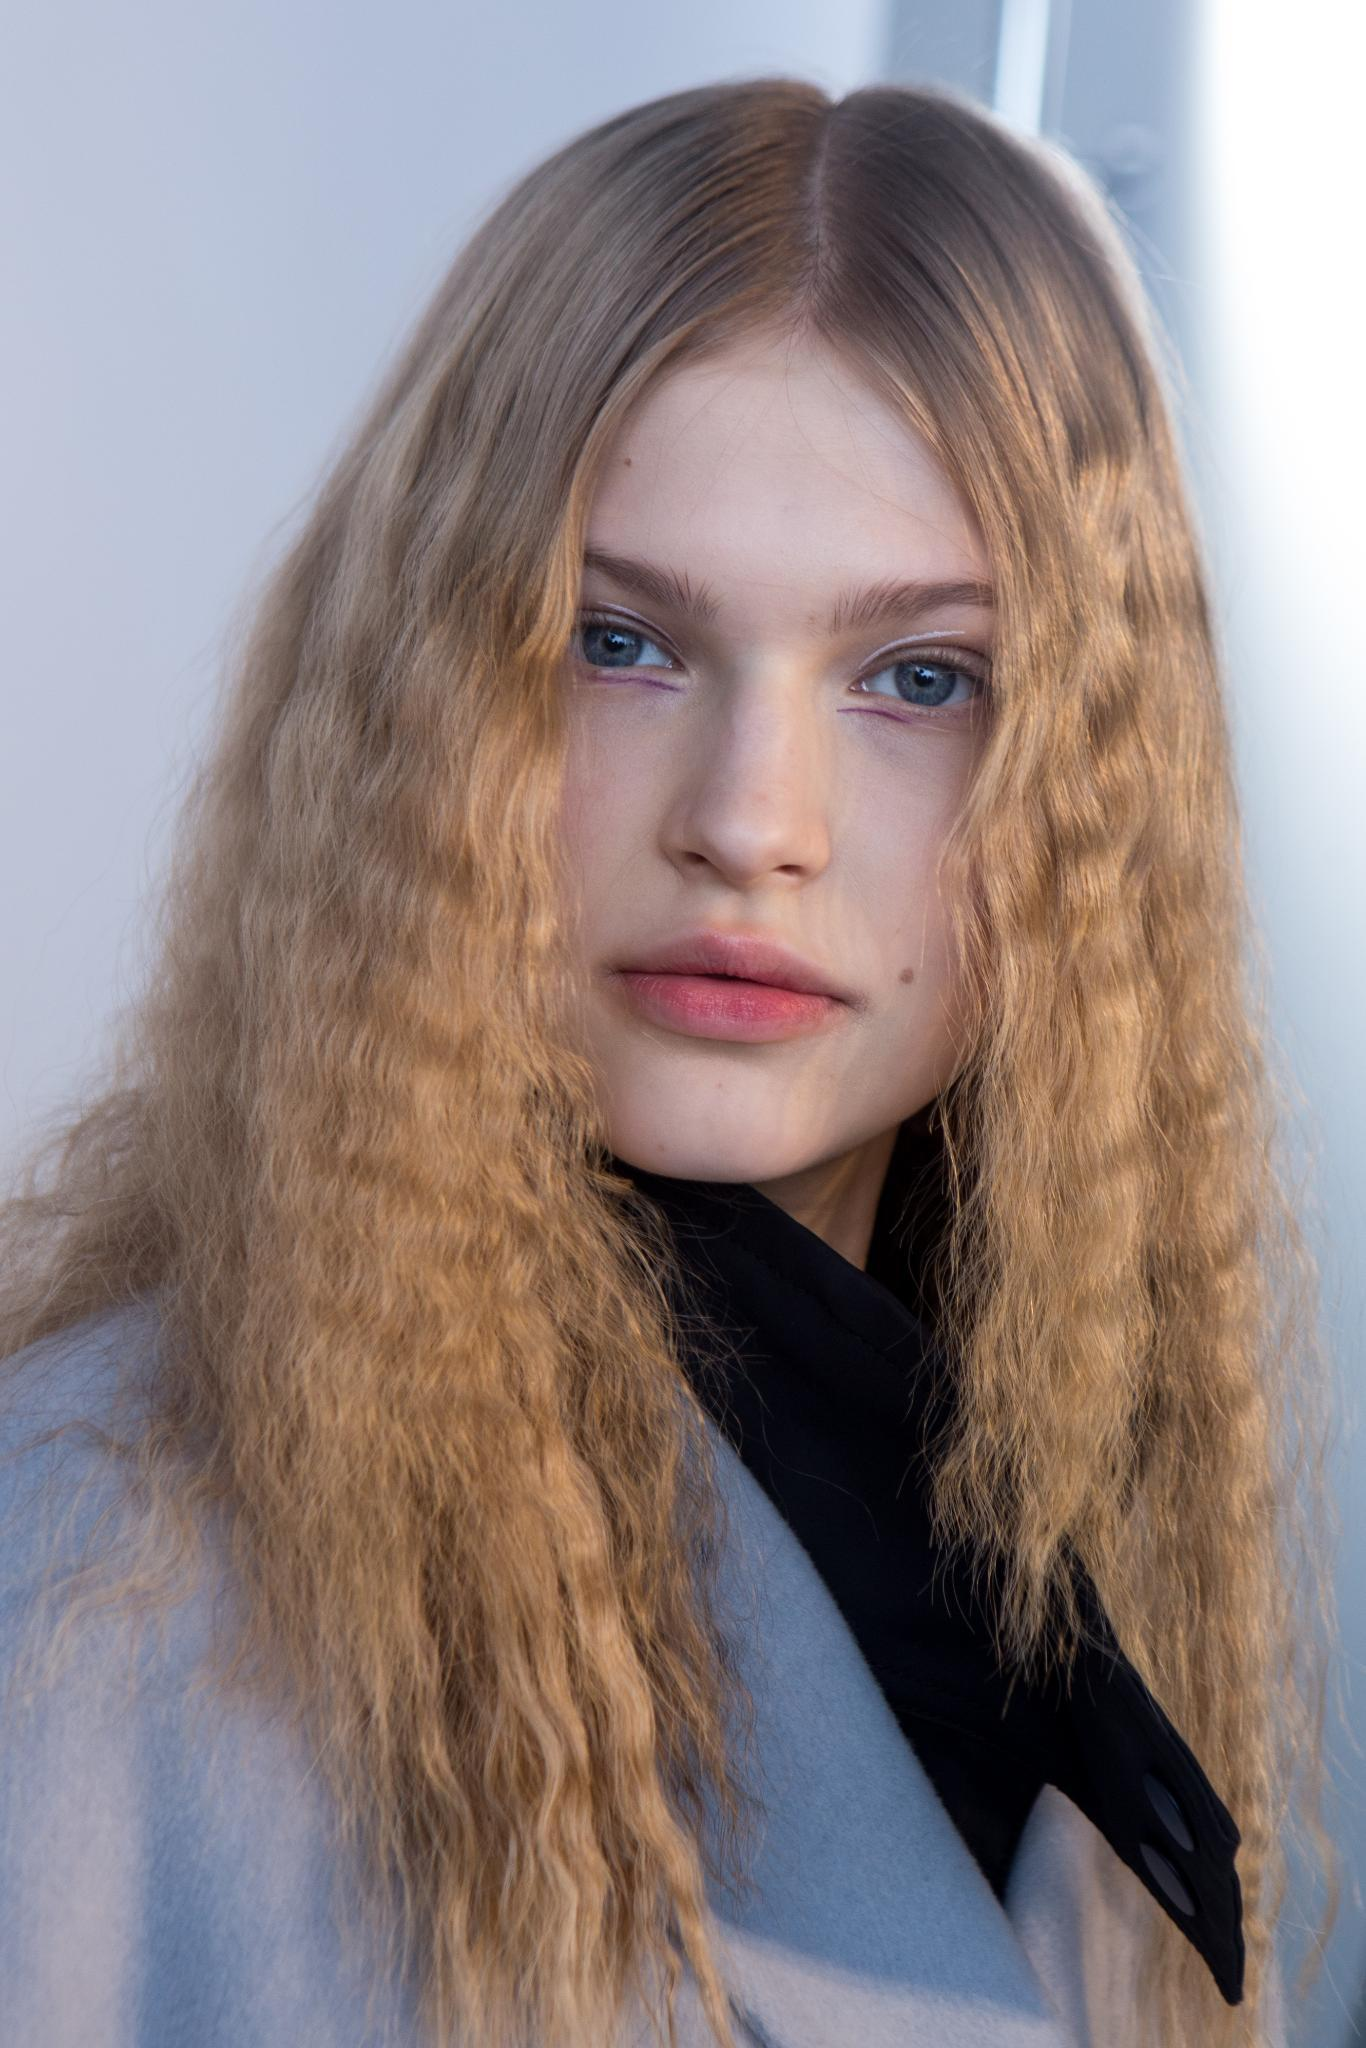 Hairstyles for thick hair: Model with natural blonde long thick hair crimped, wearing grey blazer with black turtleneck backstage